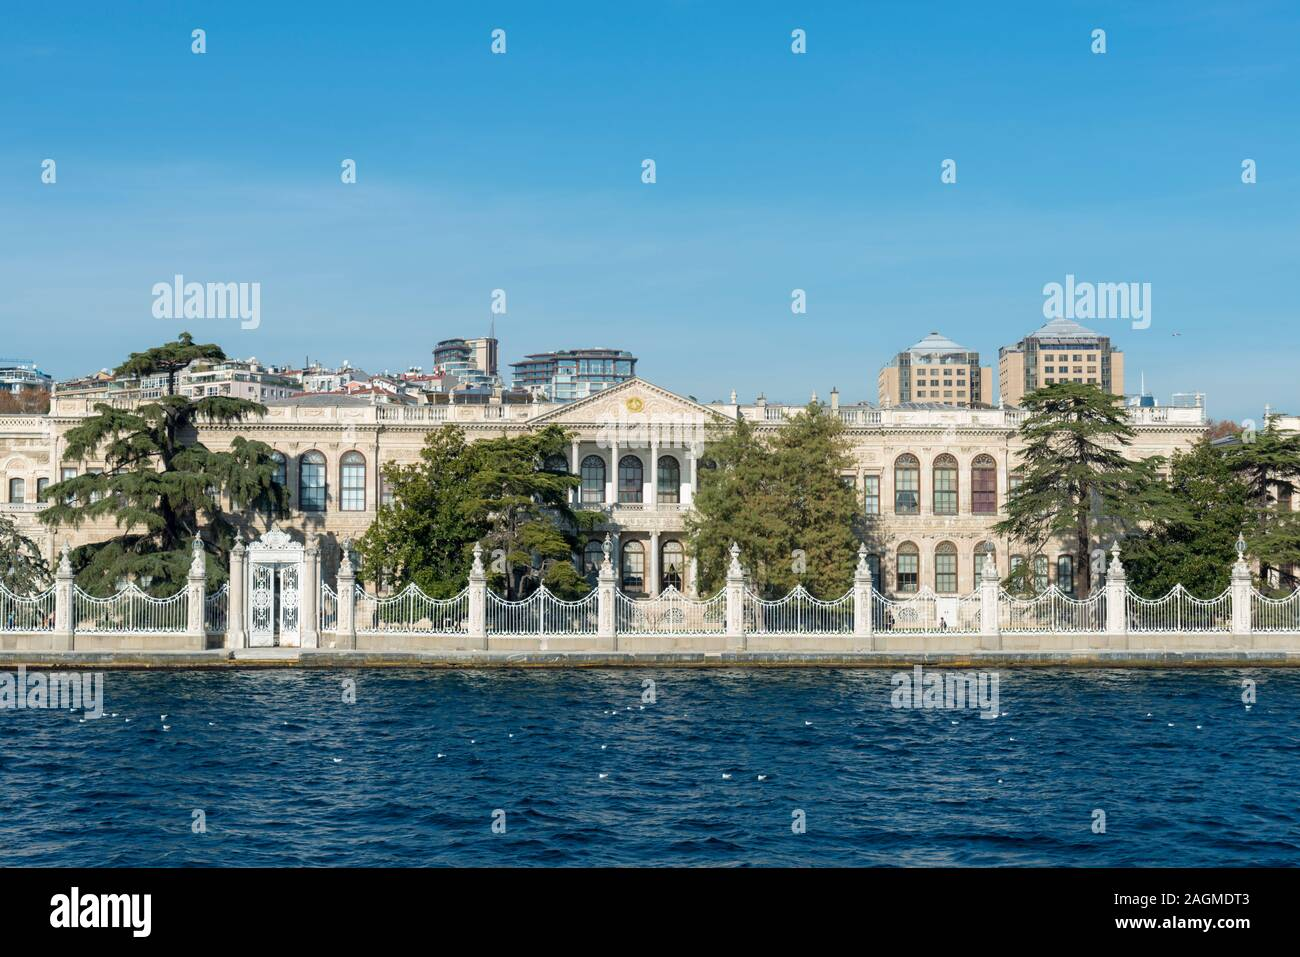 DECEMBER 17,2019 ISTANBUL TURKEY,Dolmabahce Palace built in 19 th century is one of the most glamorous palaces in the world. Stock Photo